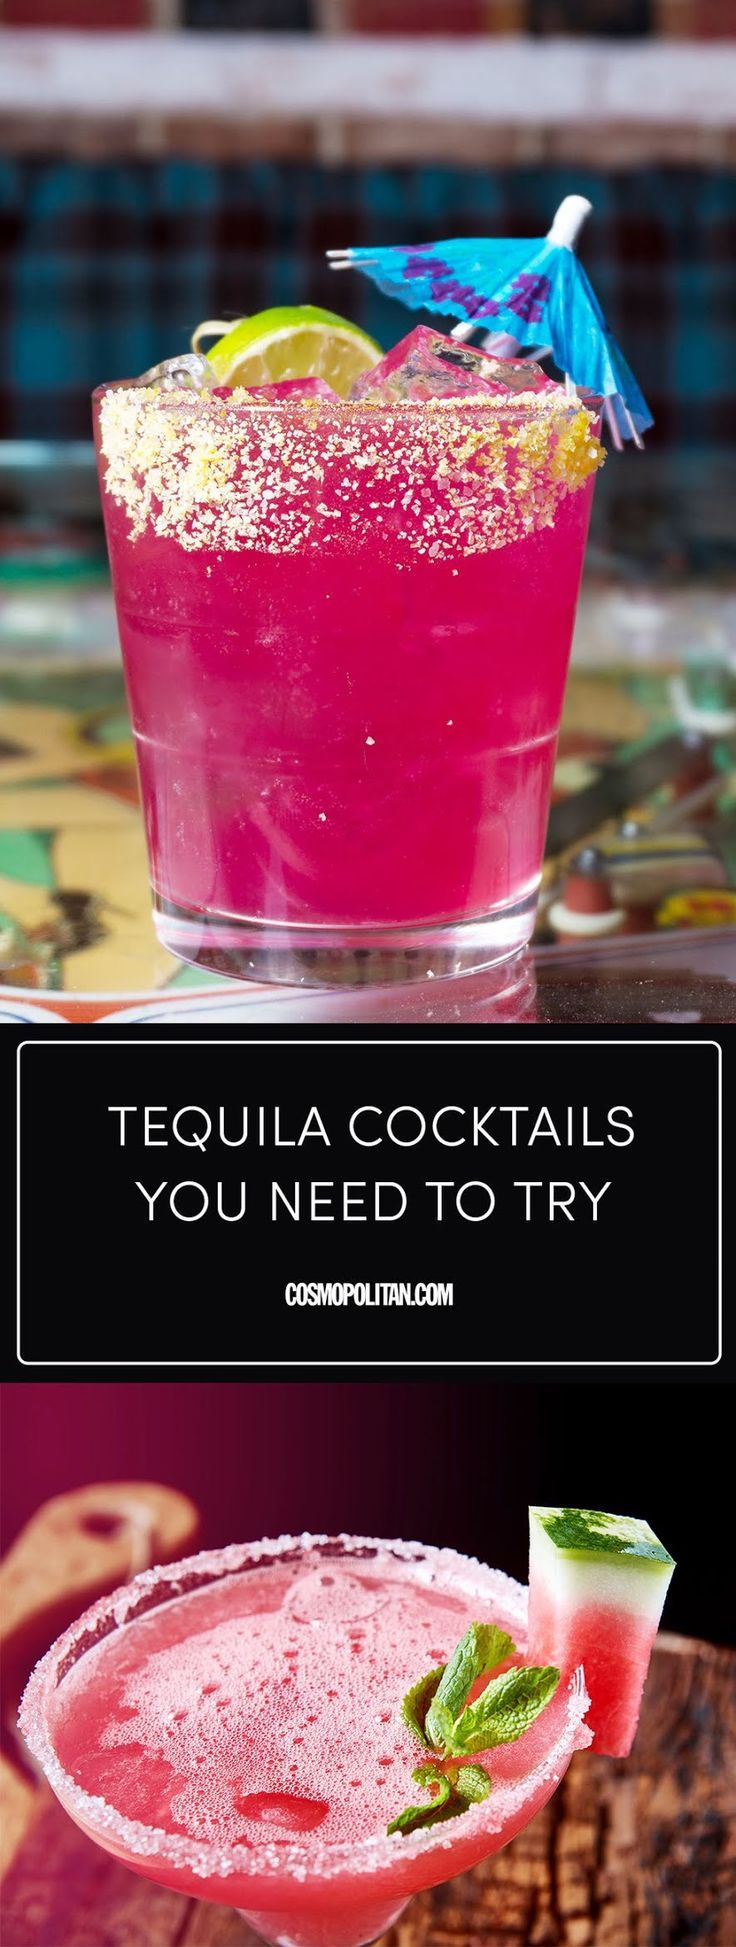 Tequila Cocktails - Recipes for Tequila Drinks #cocktails #tequila #tequiladrinks